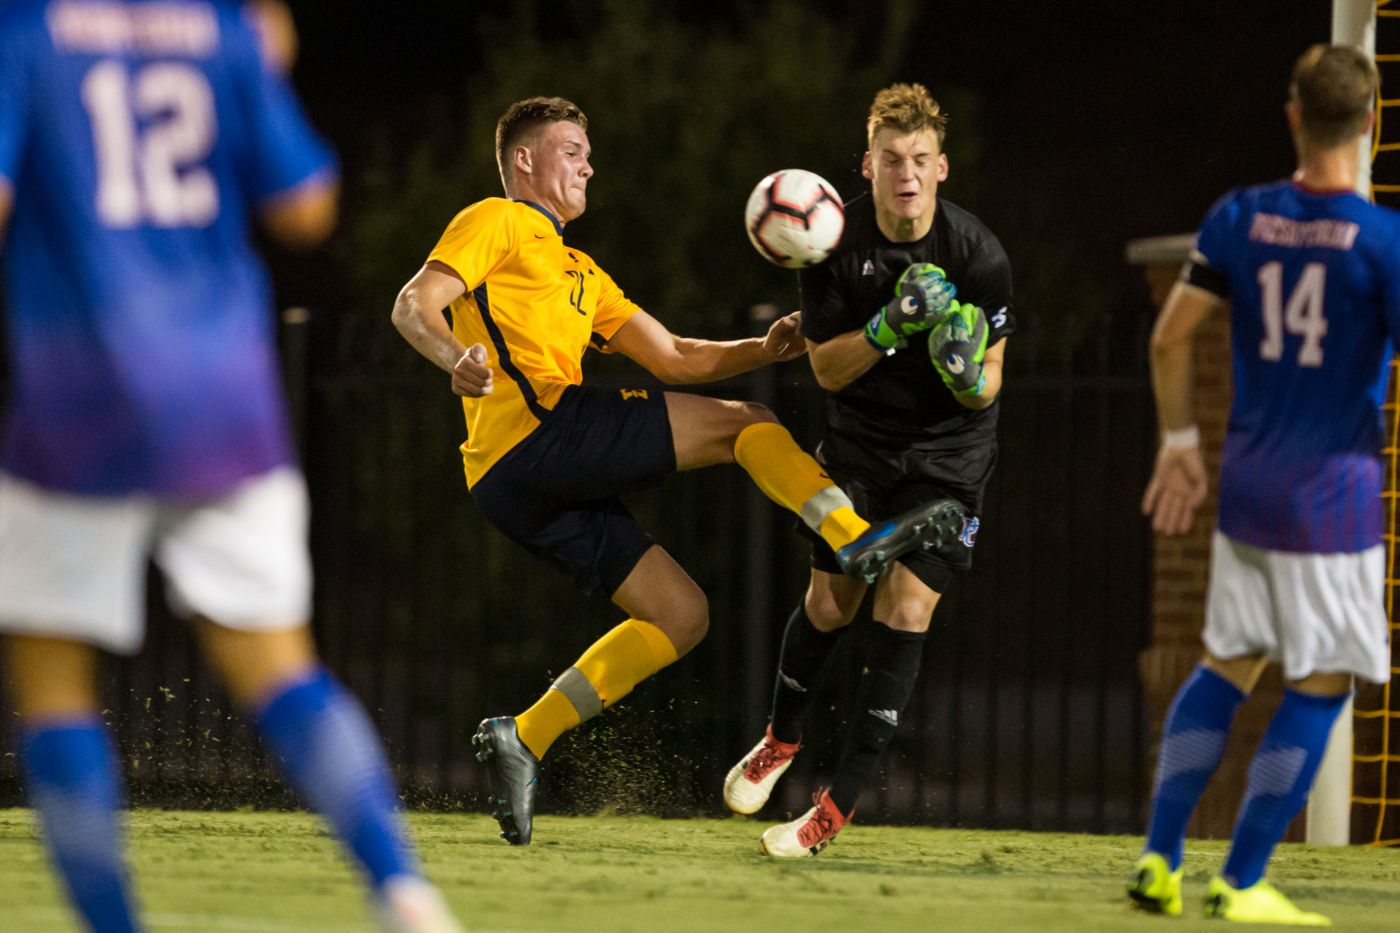 Bucs Early Offense and Strong Defense Earn 2-0 Clean Sheet Against High Point